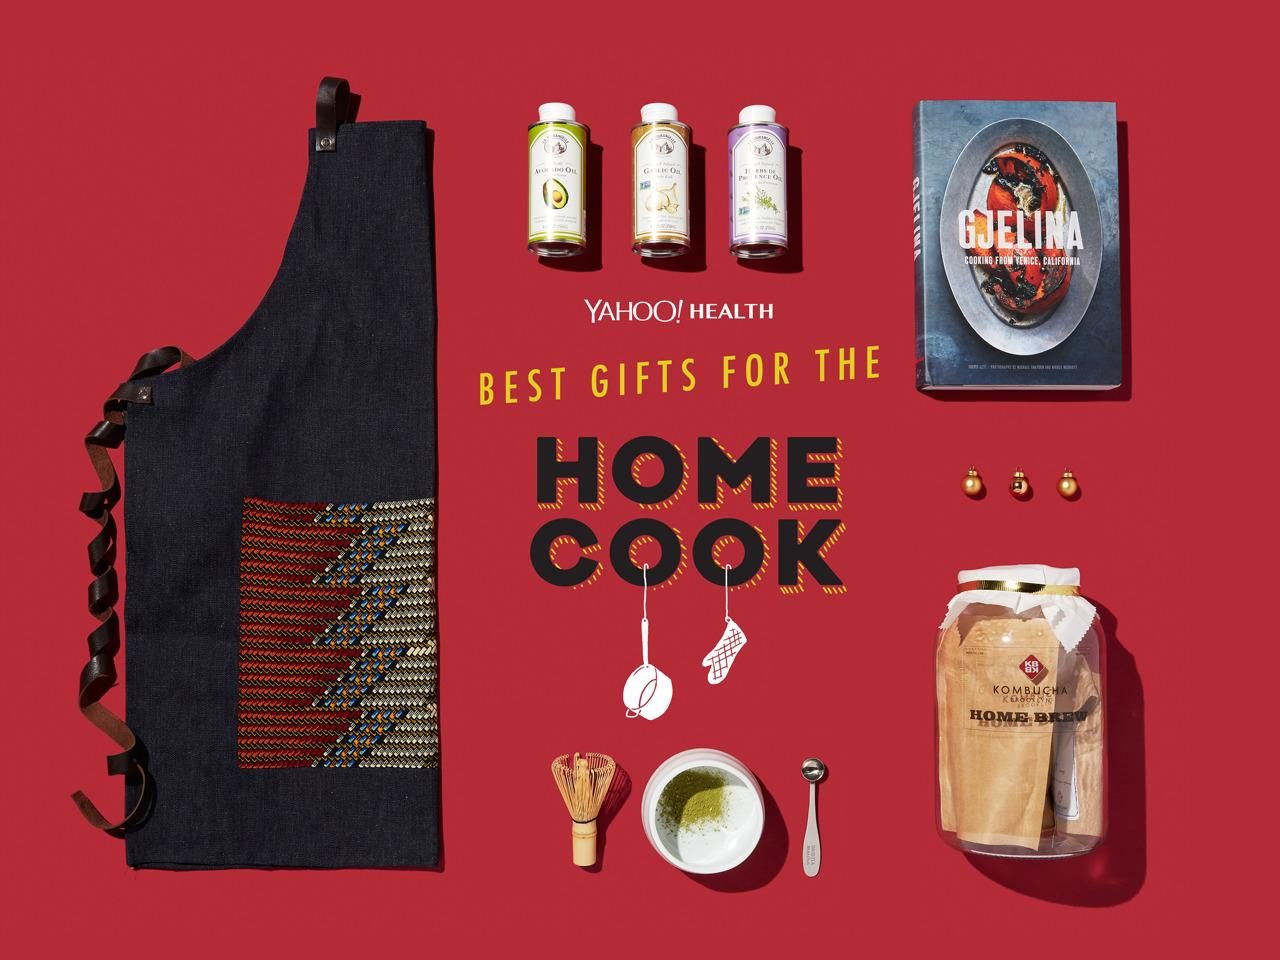 <p>Check out our top gift picks for the healthy foodie (who can never have too many kitchen supplies). <br /></p><p>(Design by Erik Mace / Photo by Jon Paterson for Yahoo Health)<br /></p>